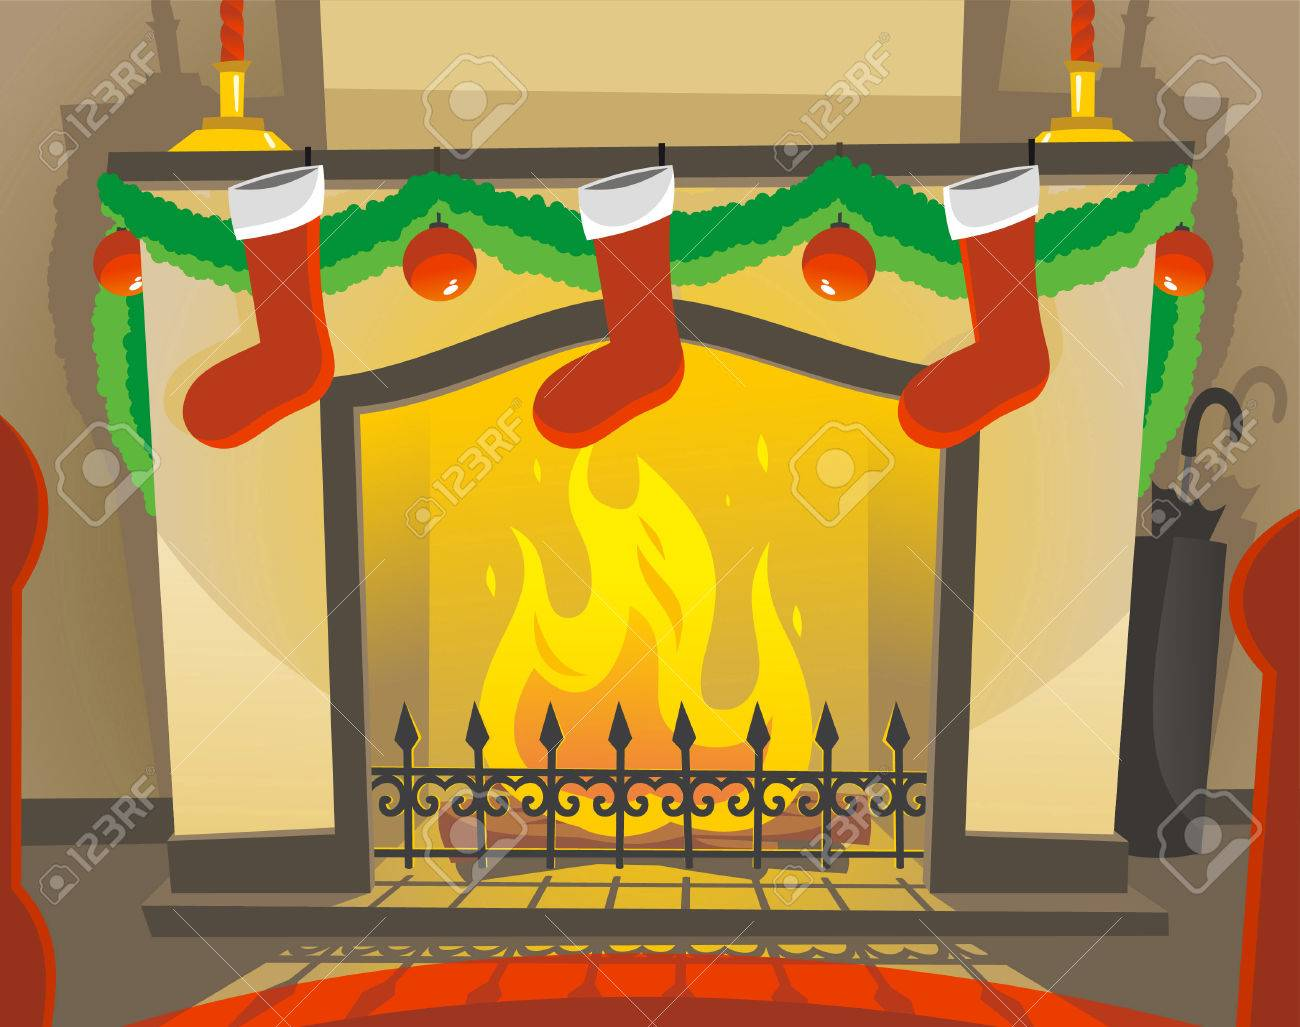 2,248 Christmas Fireplace Decoration Stock Vector Illustration And ...